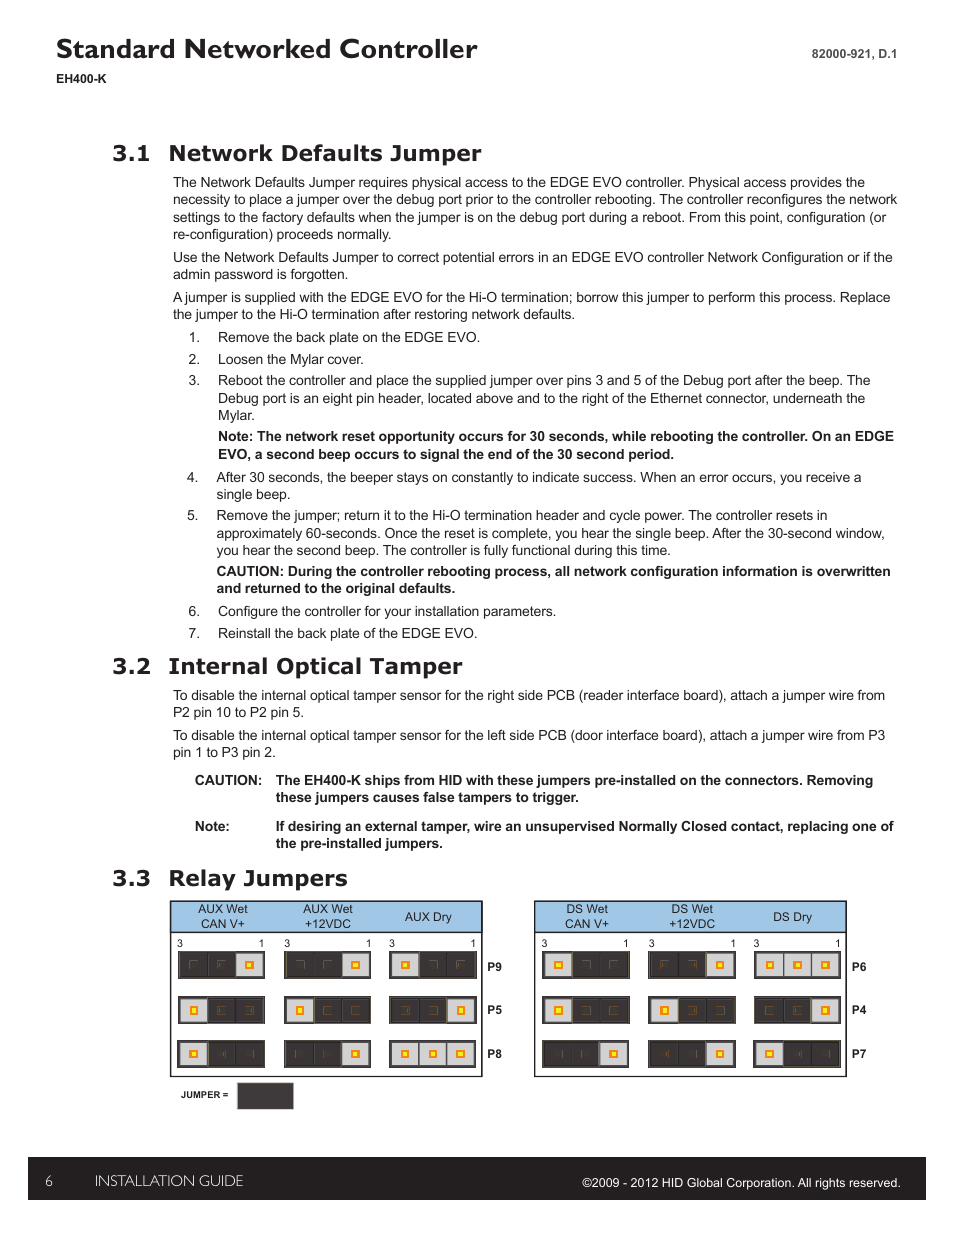 hid edge evo solo esh400 k networked controller installation guide page6 1 internal tamper disable jumpers, 2 relay jumpers, 3 tamper hid edge evo wiring diagram at bayanpartner.co